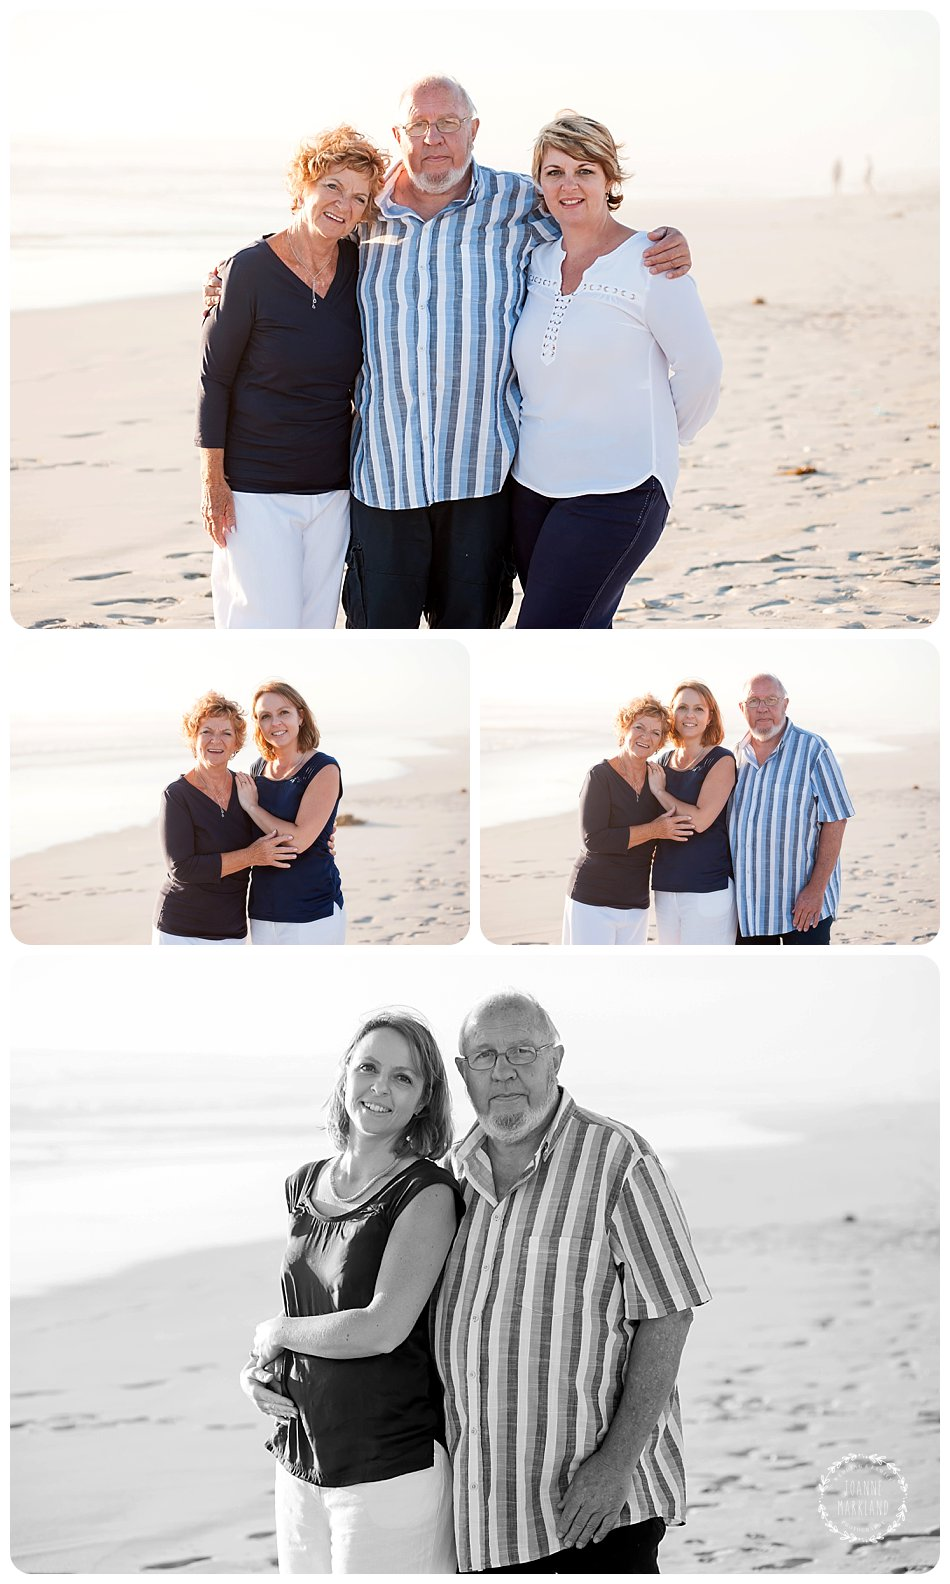 table mountain beach, beach portraits, cape town beaches, cape town family photographer, joanne markland photography, family portraits, top family photographer, top cape town family photographer, family